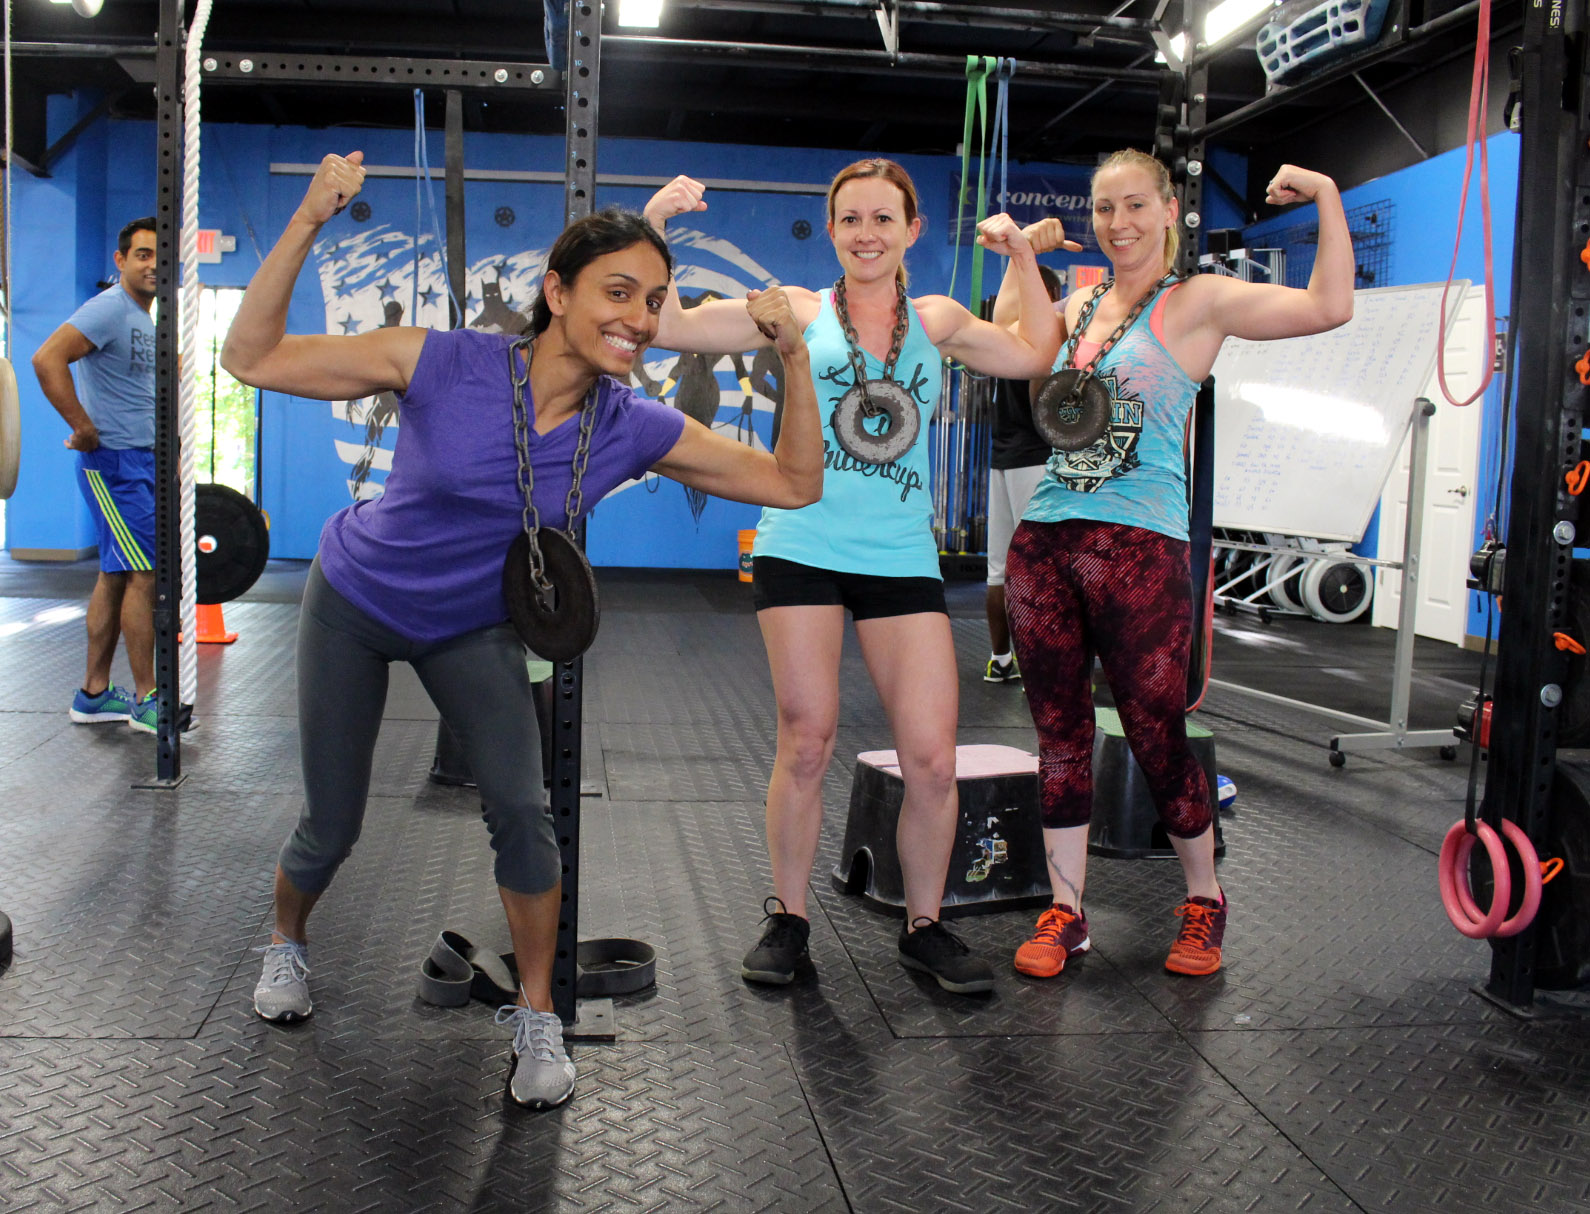 Tejal, Mary & Devon in between sets of Weighted Pull-ups.